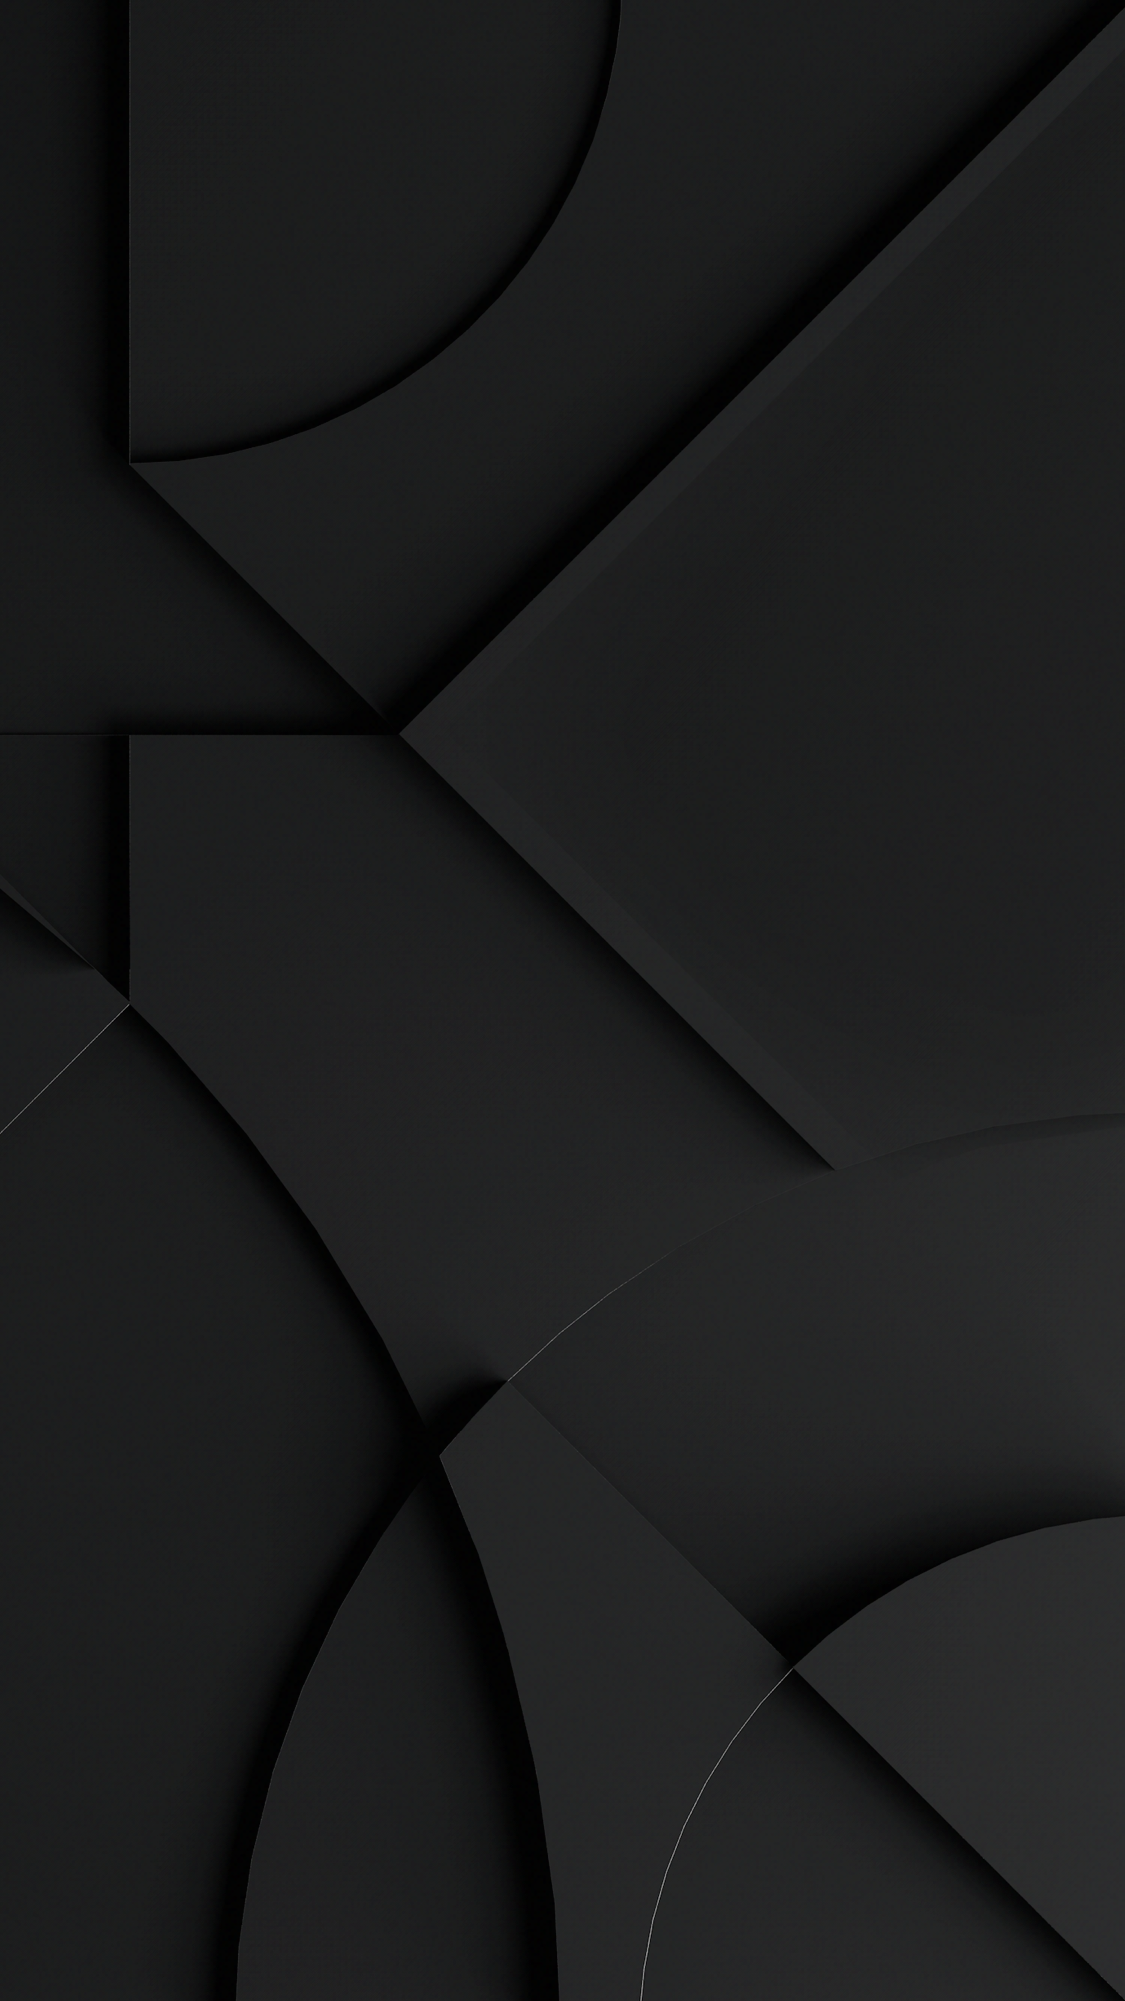 Black Layers Material Design Dimensional Shadows Clean Abstract Black Phone Wallpaper Black Wallpaper Android Wallpaper